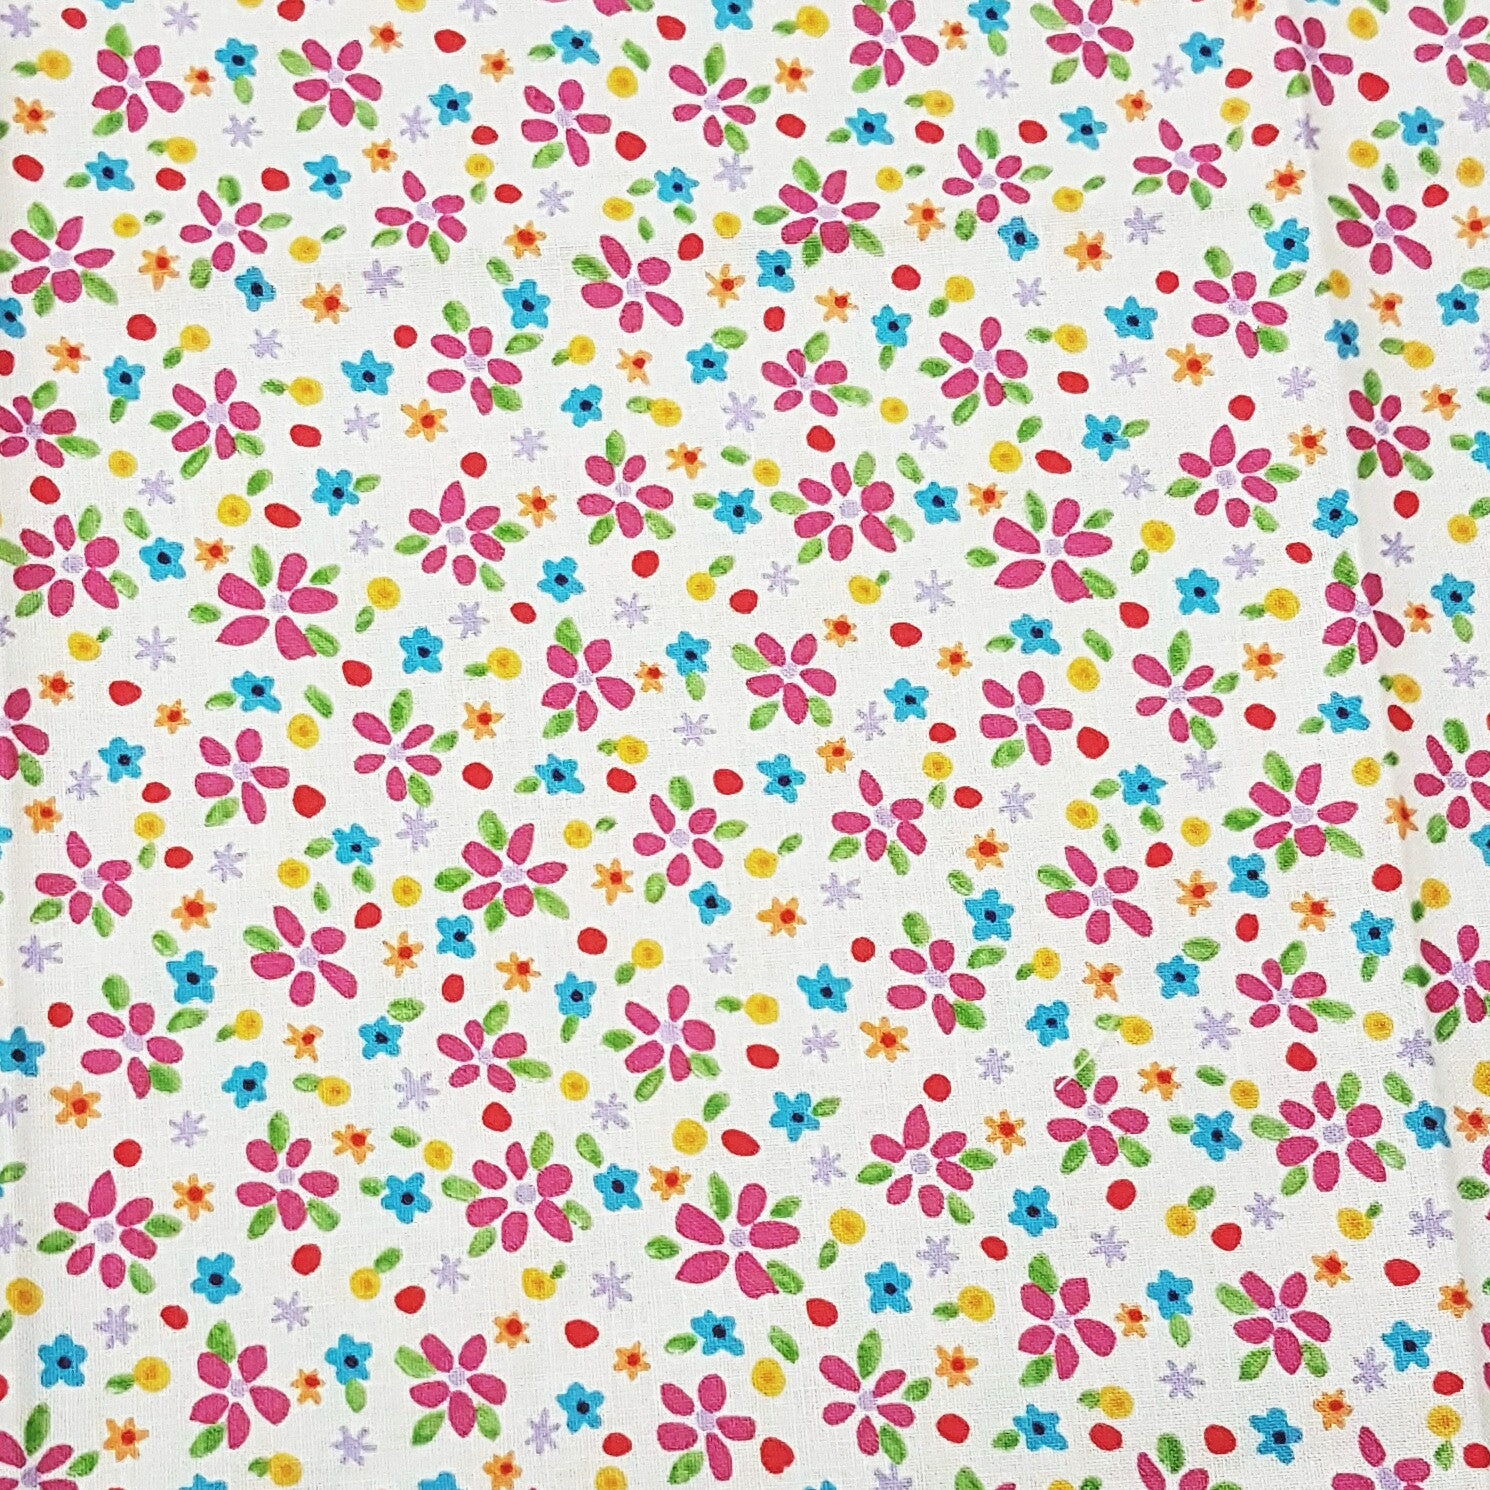 Festive Garden Flowers - 100% Cotton Fabric Fat Quarter - Vera Fabrics